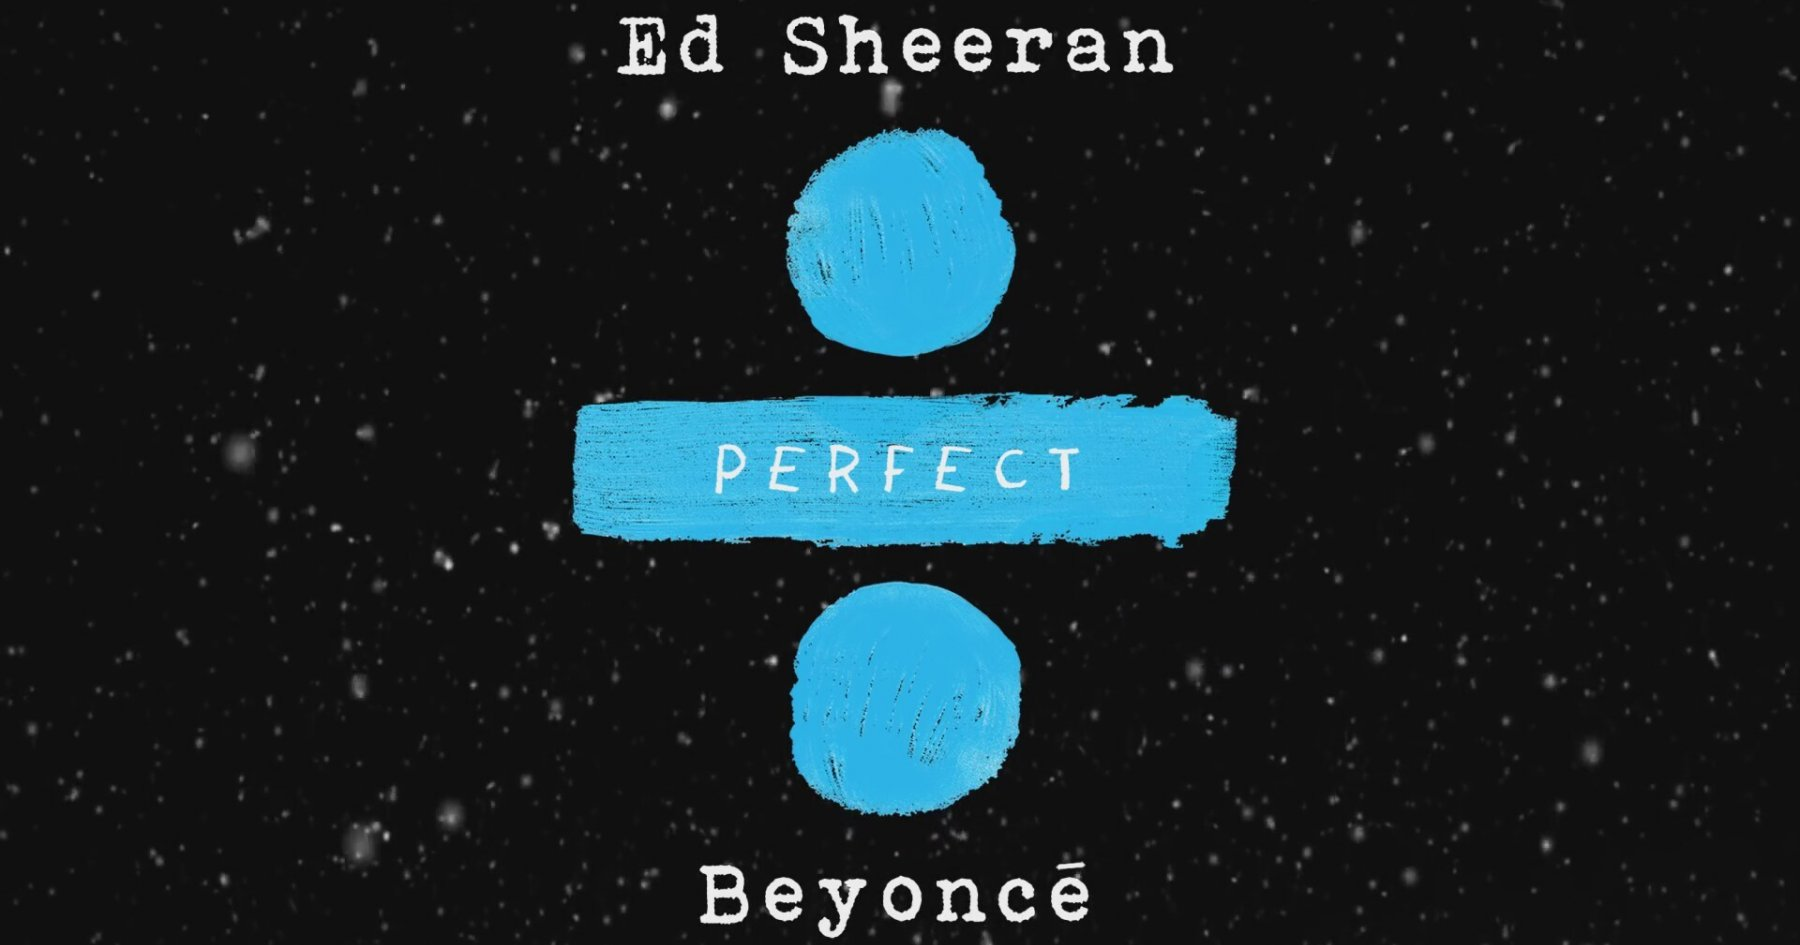 Ed Sheeran  Beyonce - Perfect Duet  Zlesenecom-7108